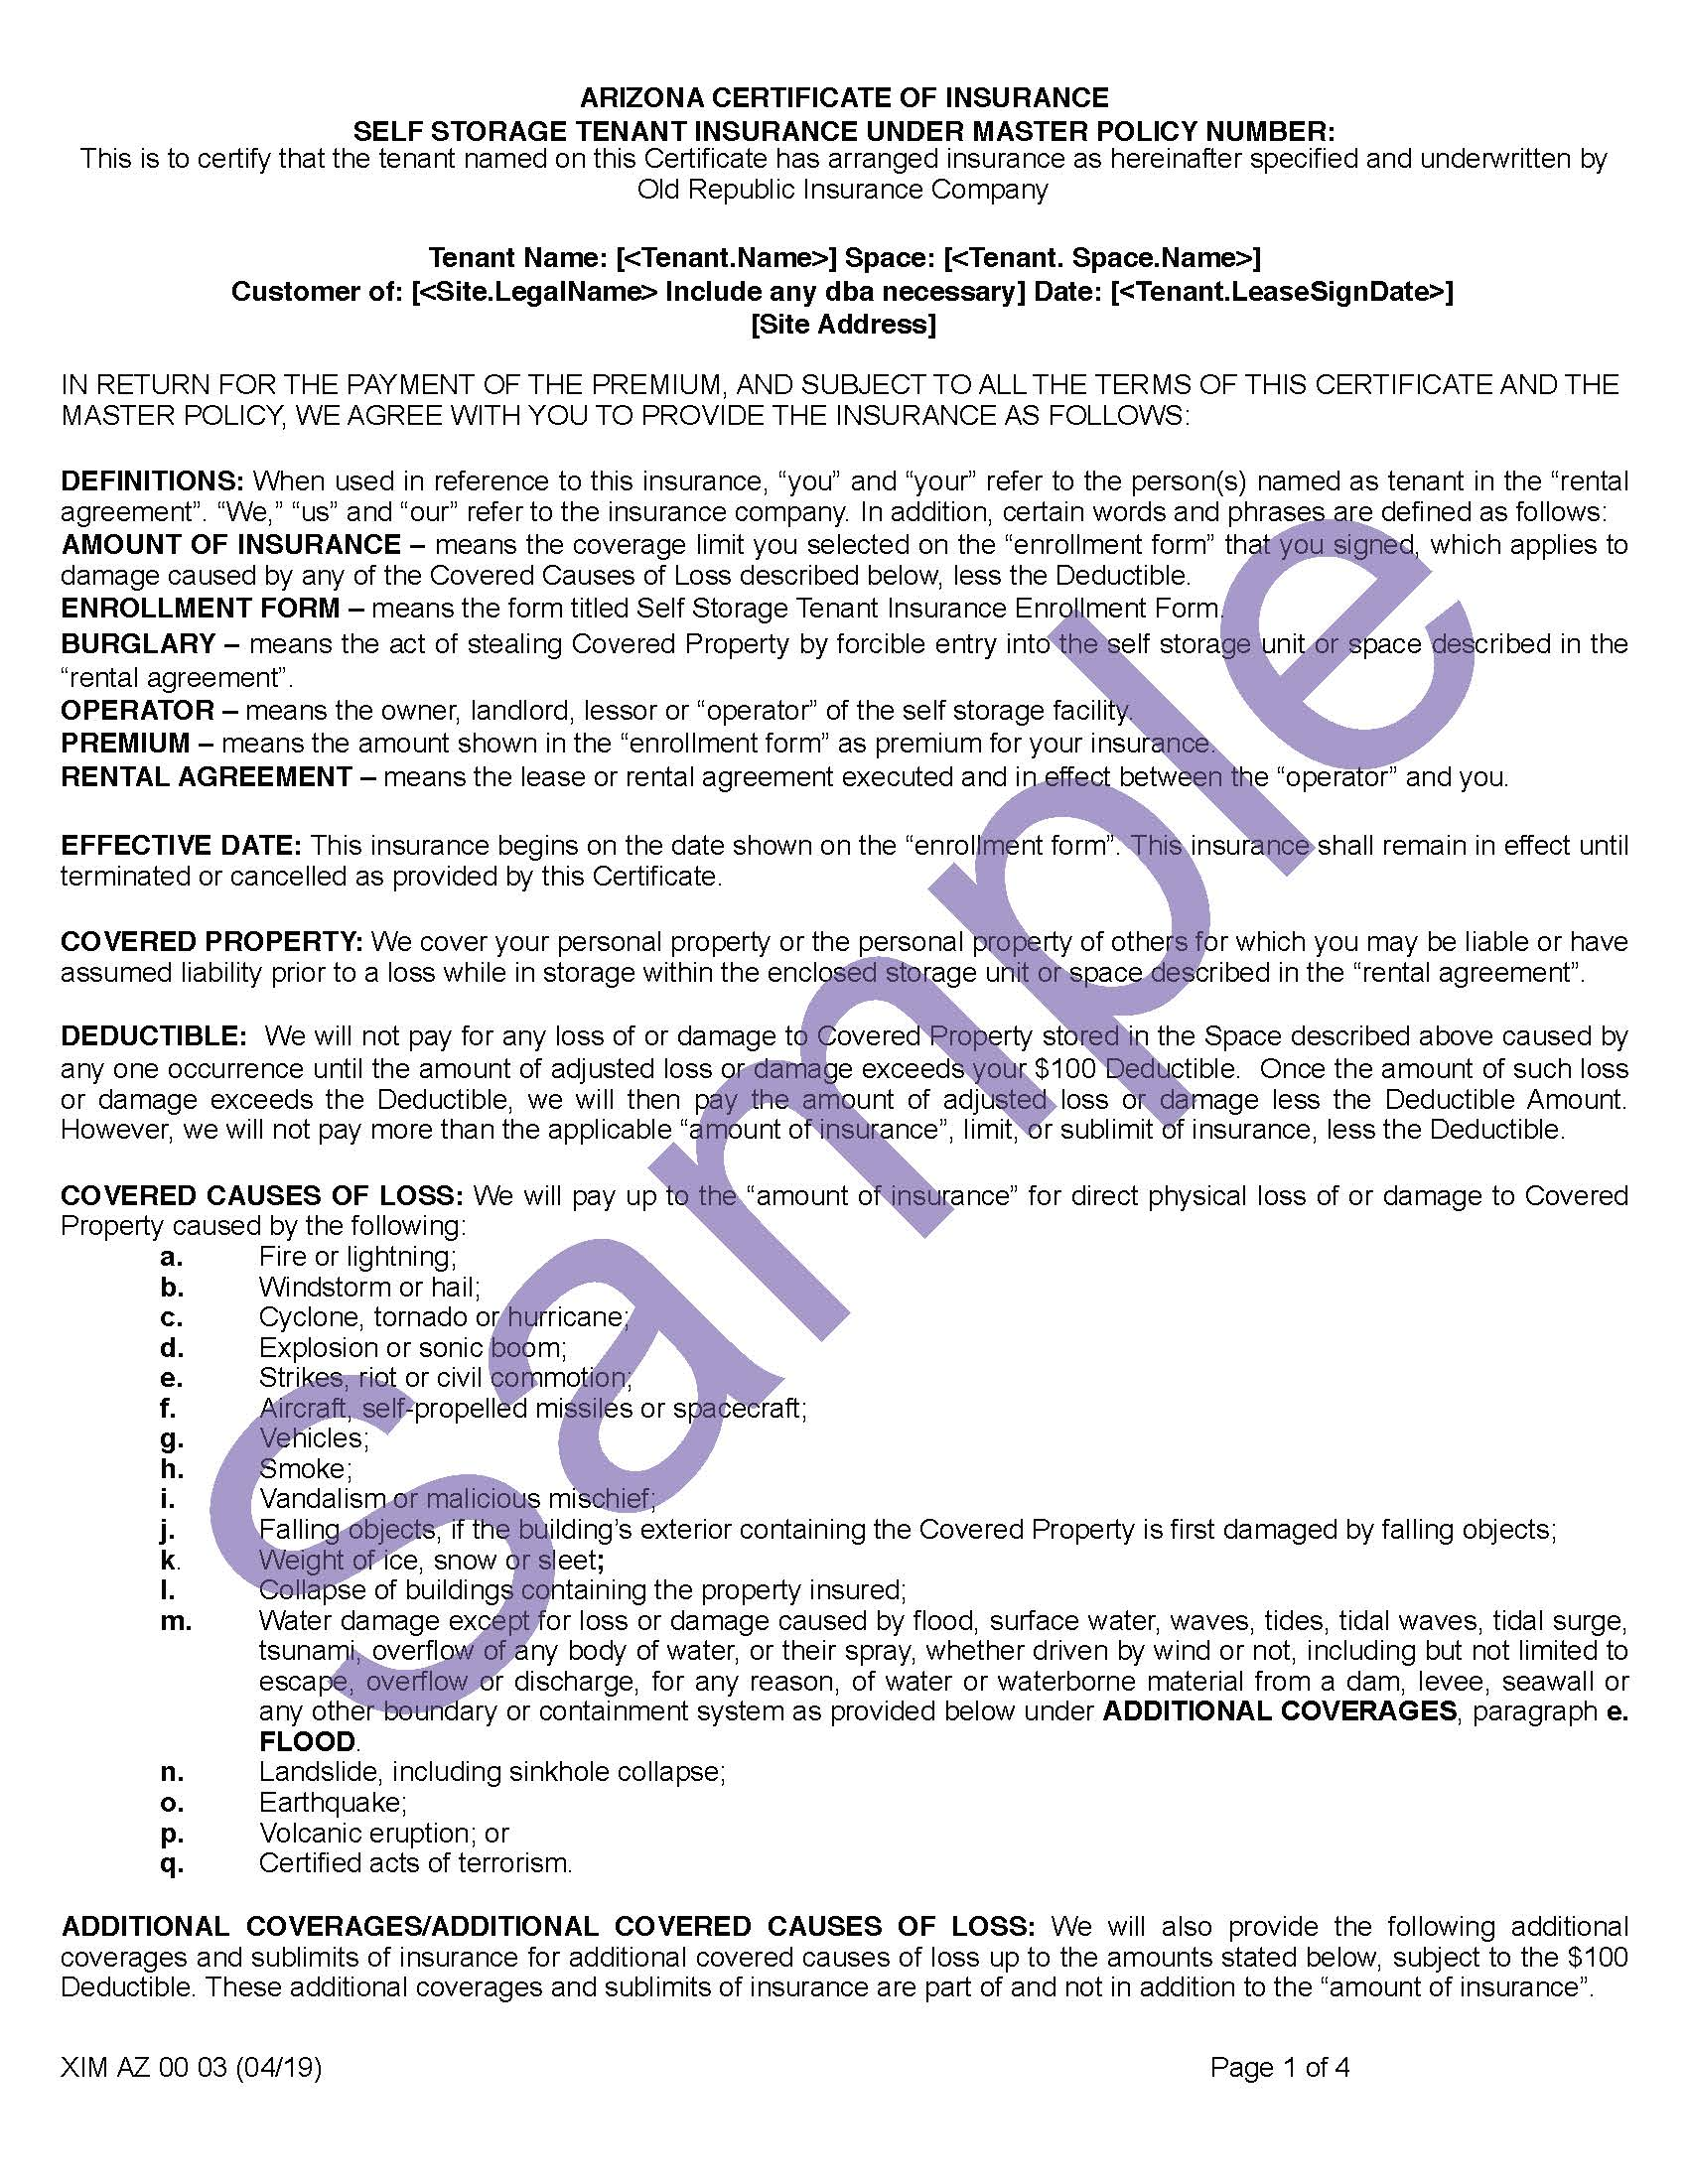 XIM AZ 00 03 04 19 Arizona Certificate of Insurance_Page_1.jpg